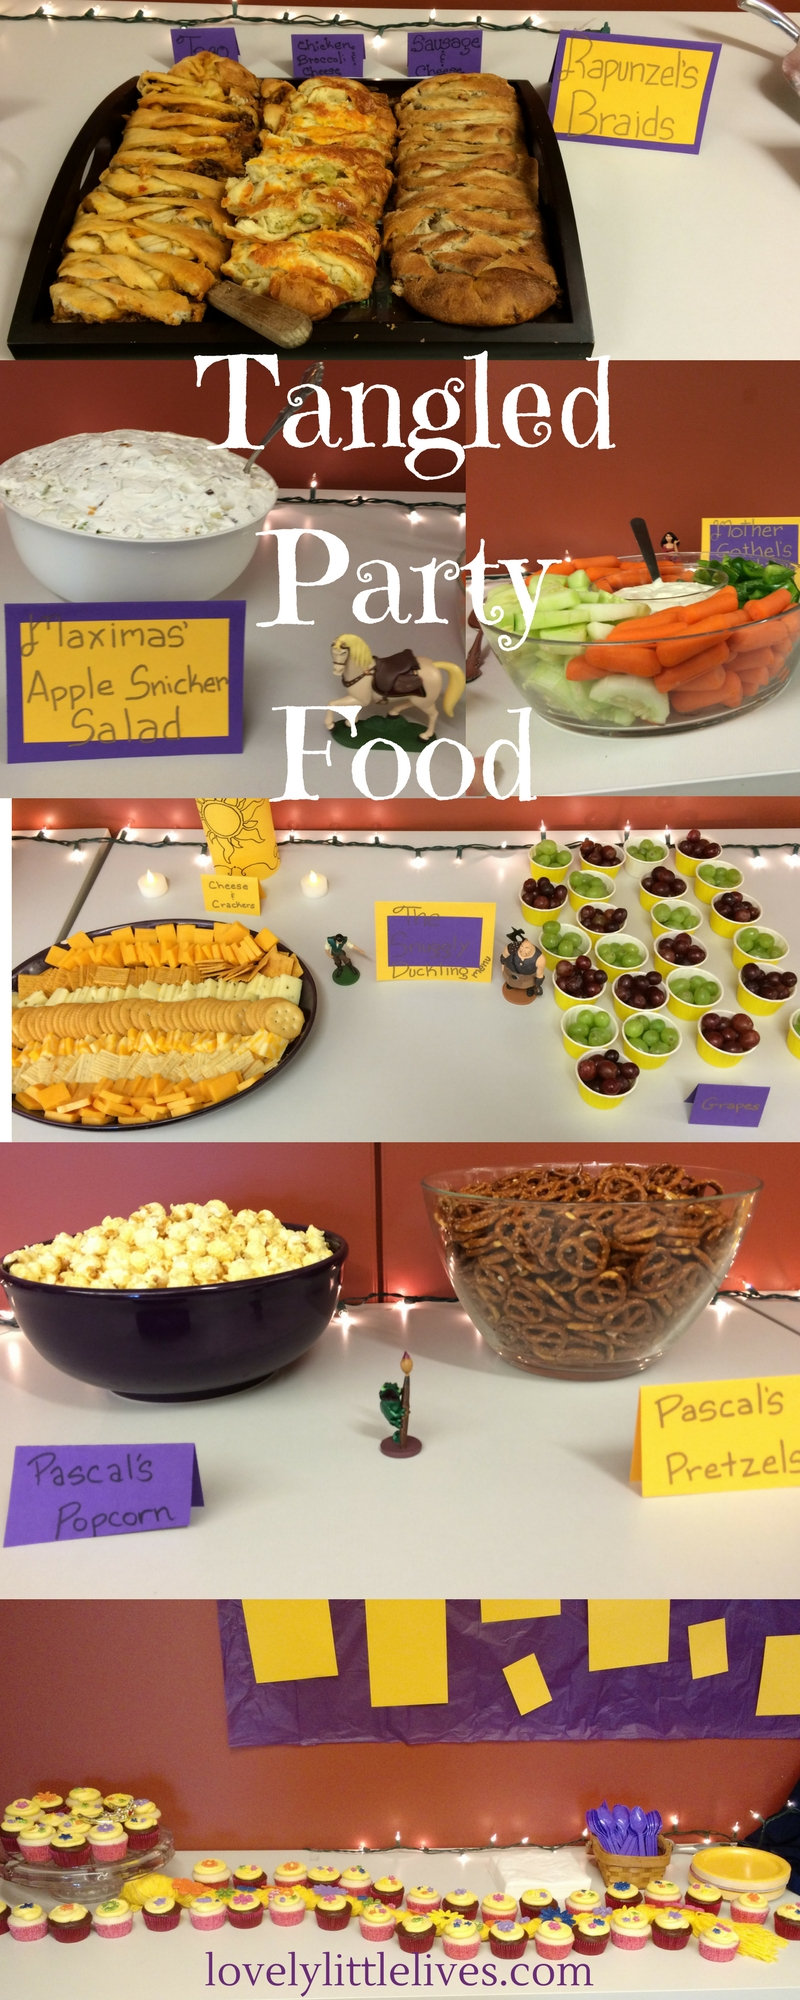 Tangled Party Food